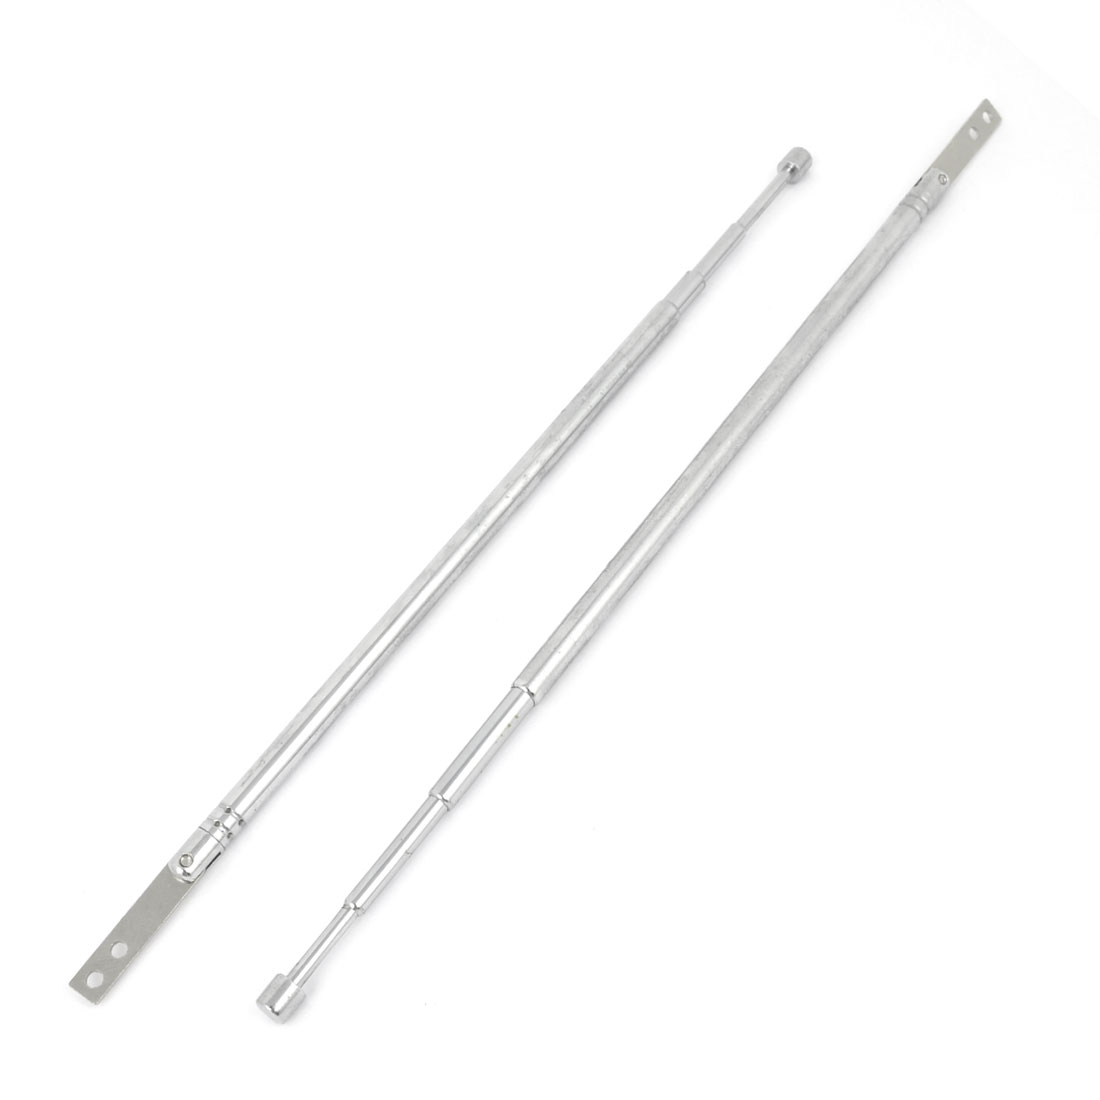 2 Pcs Radio Control TV Stainless Steel Telescopic Antenna Remote Aerial Replacement 57cm Length 4 Sections